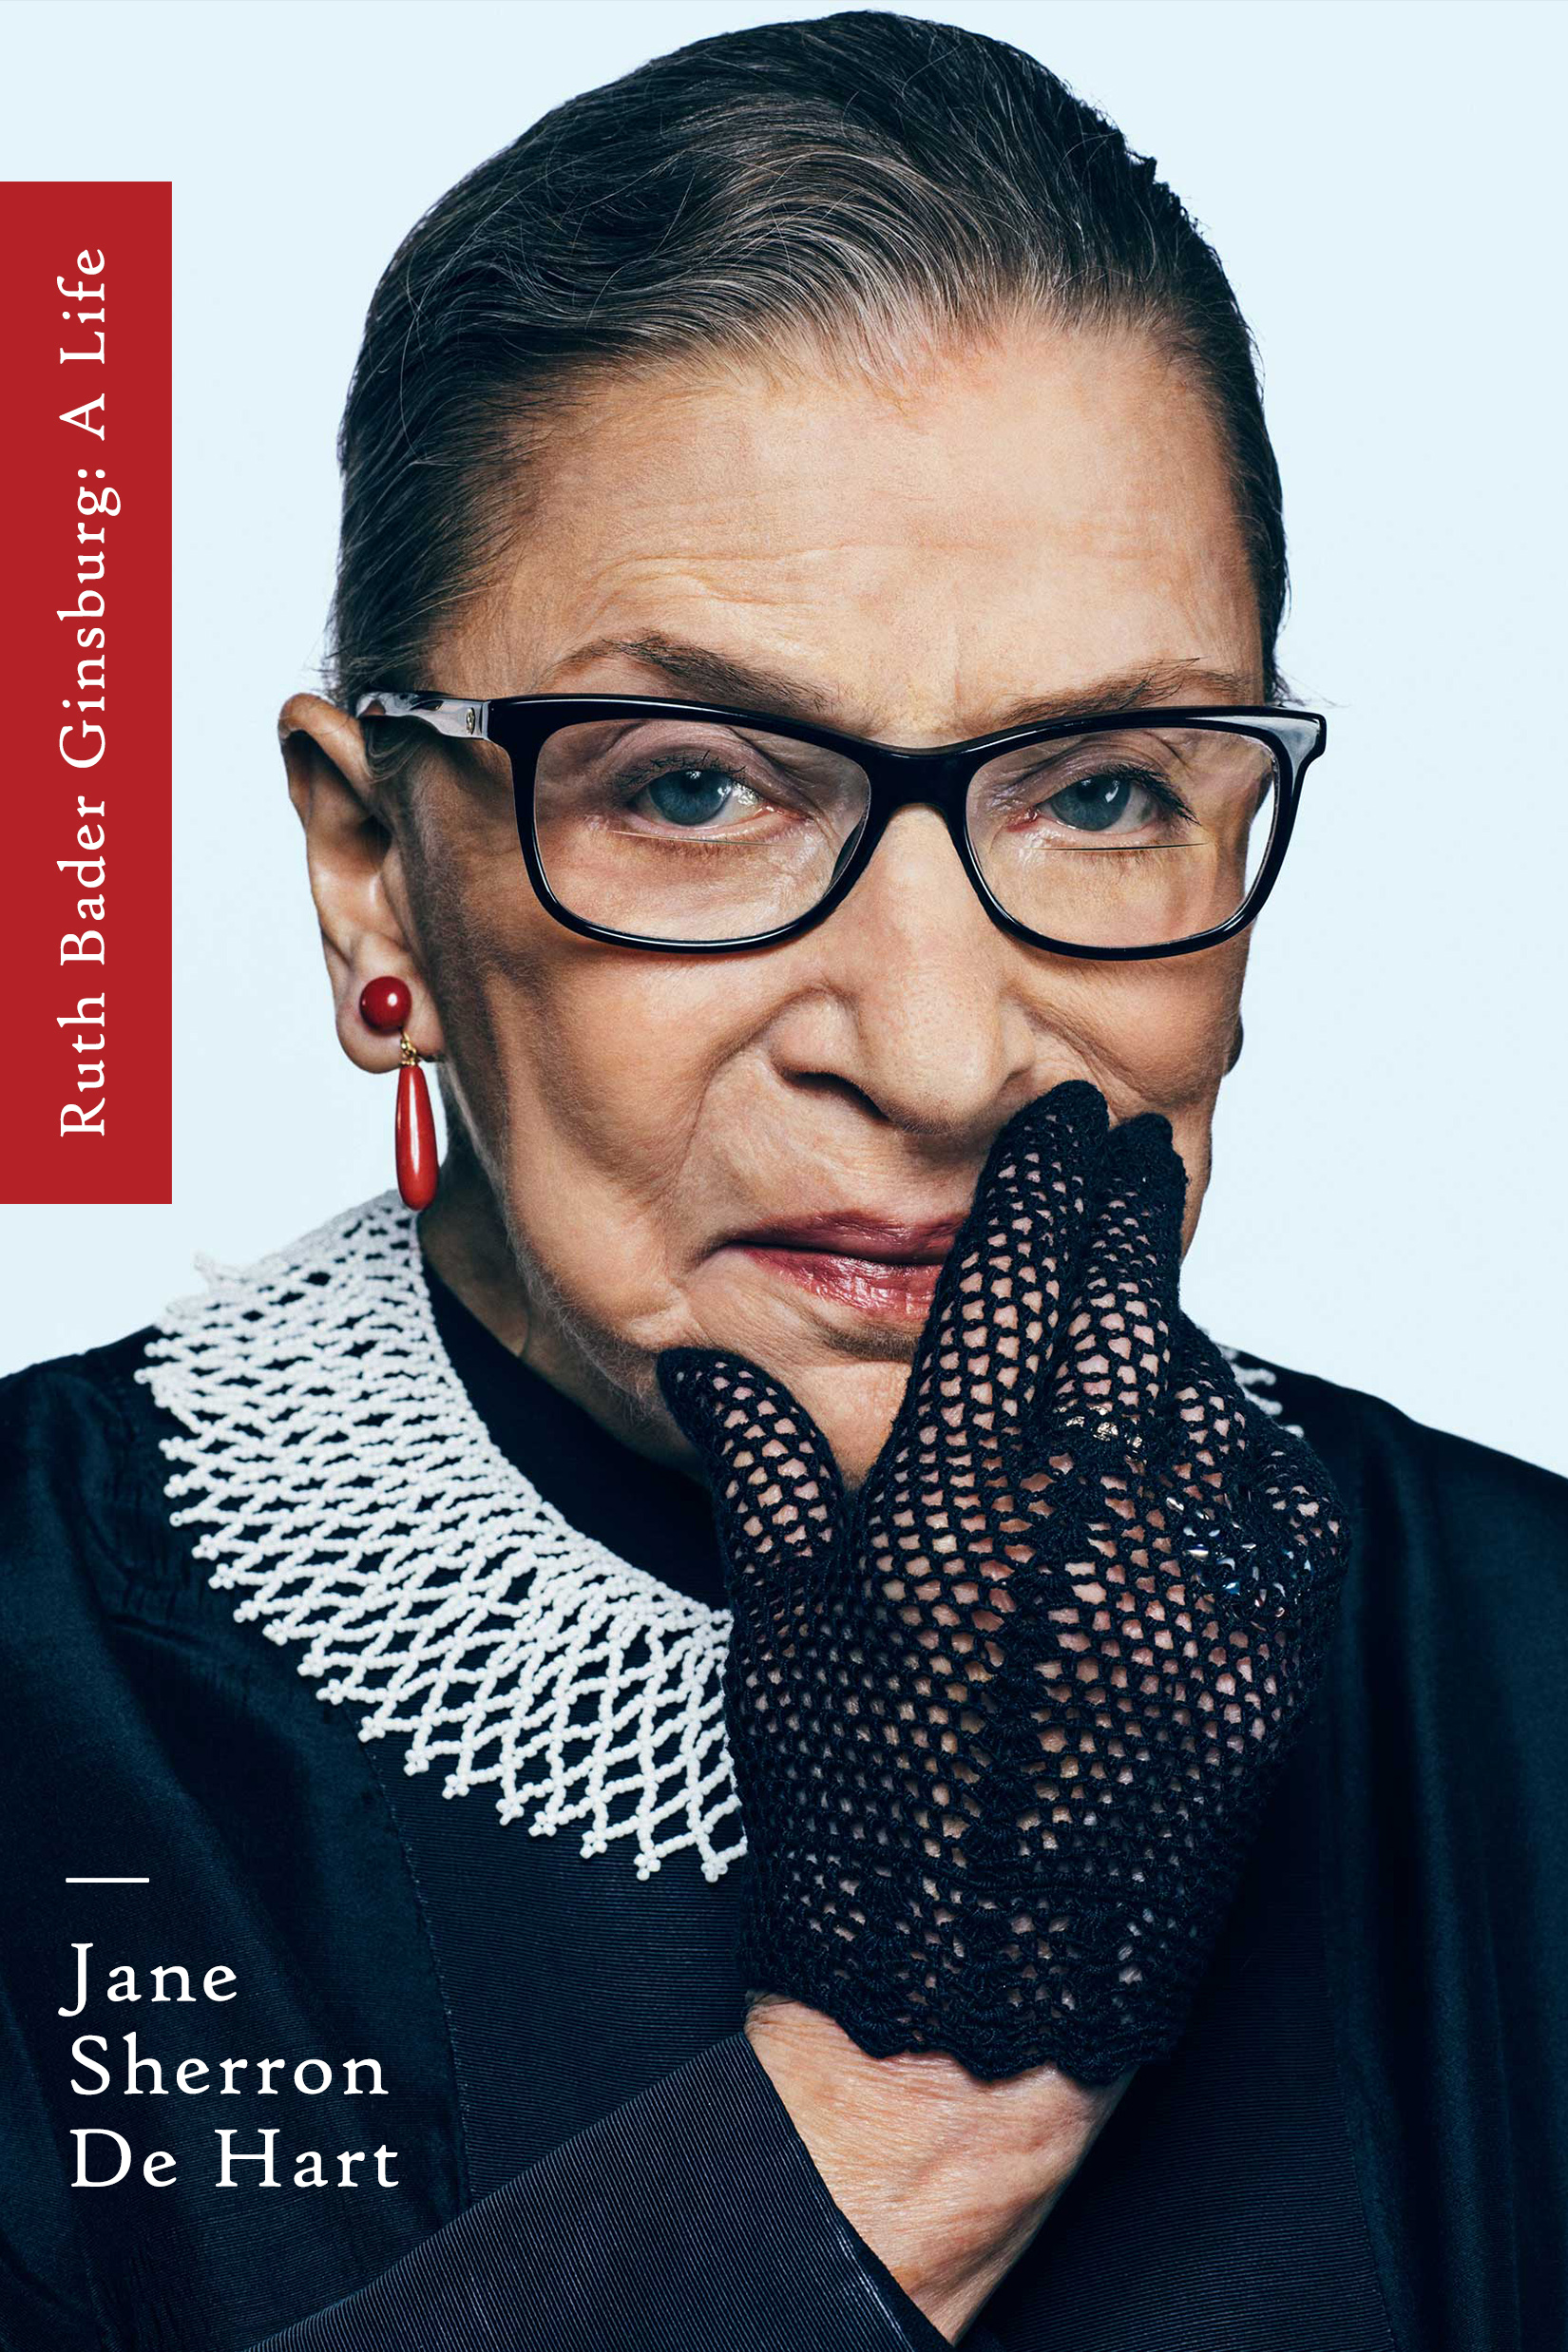 Ruth Bader Ginsburg: A Life by J.S. De Hart Designed by Ben Mautner for One Hour Covers